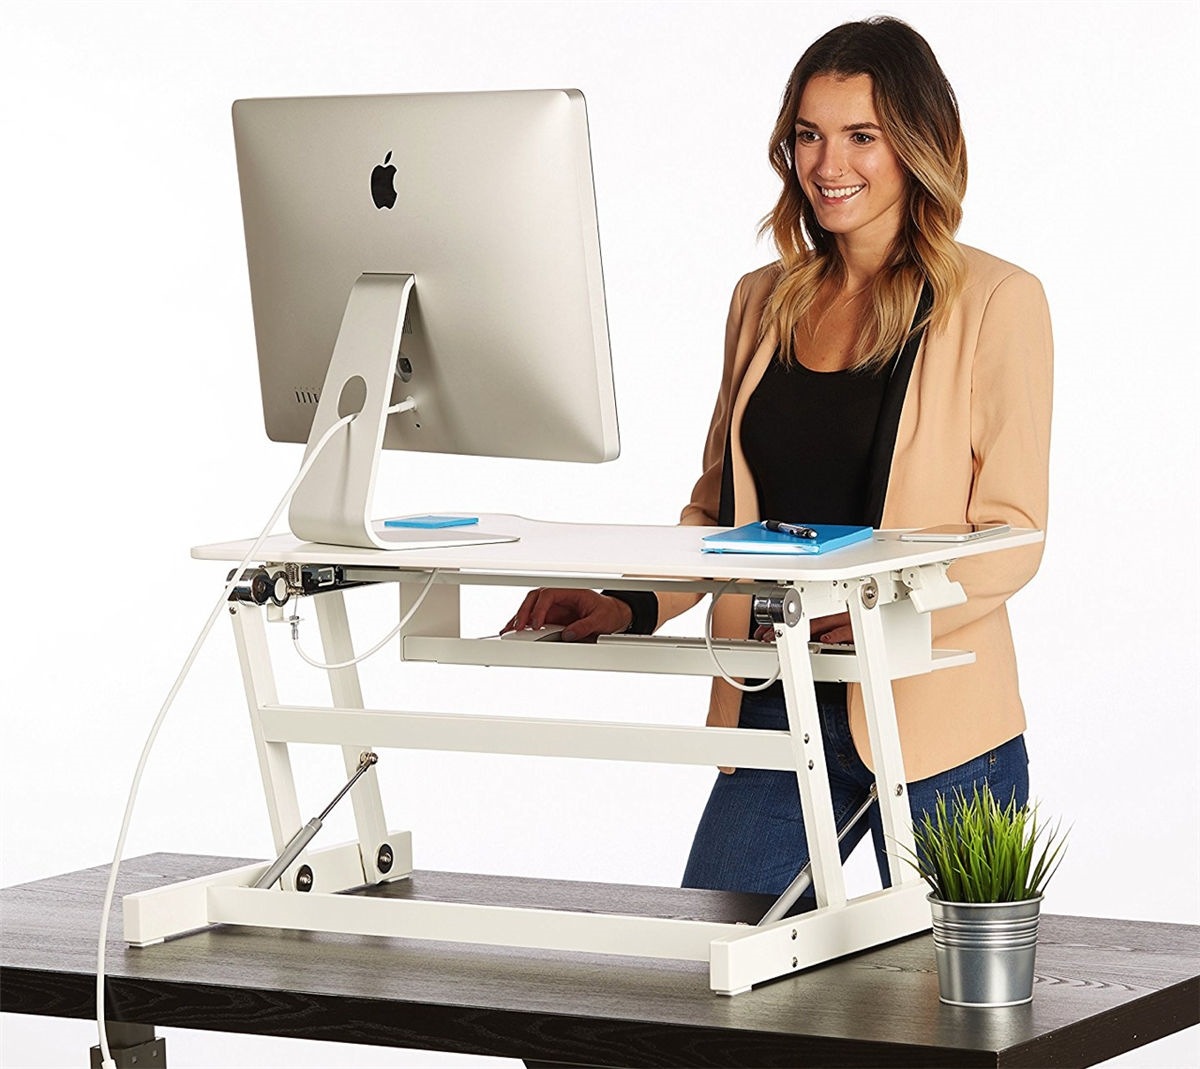 White Standing Desk The Deskriser Height Adjustable Heavy Duty Sit To Stand Office Desk Supports Up To 50 Lbs 32 Wide Sit Stand Up Desk Converter